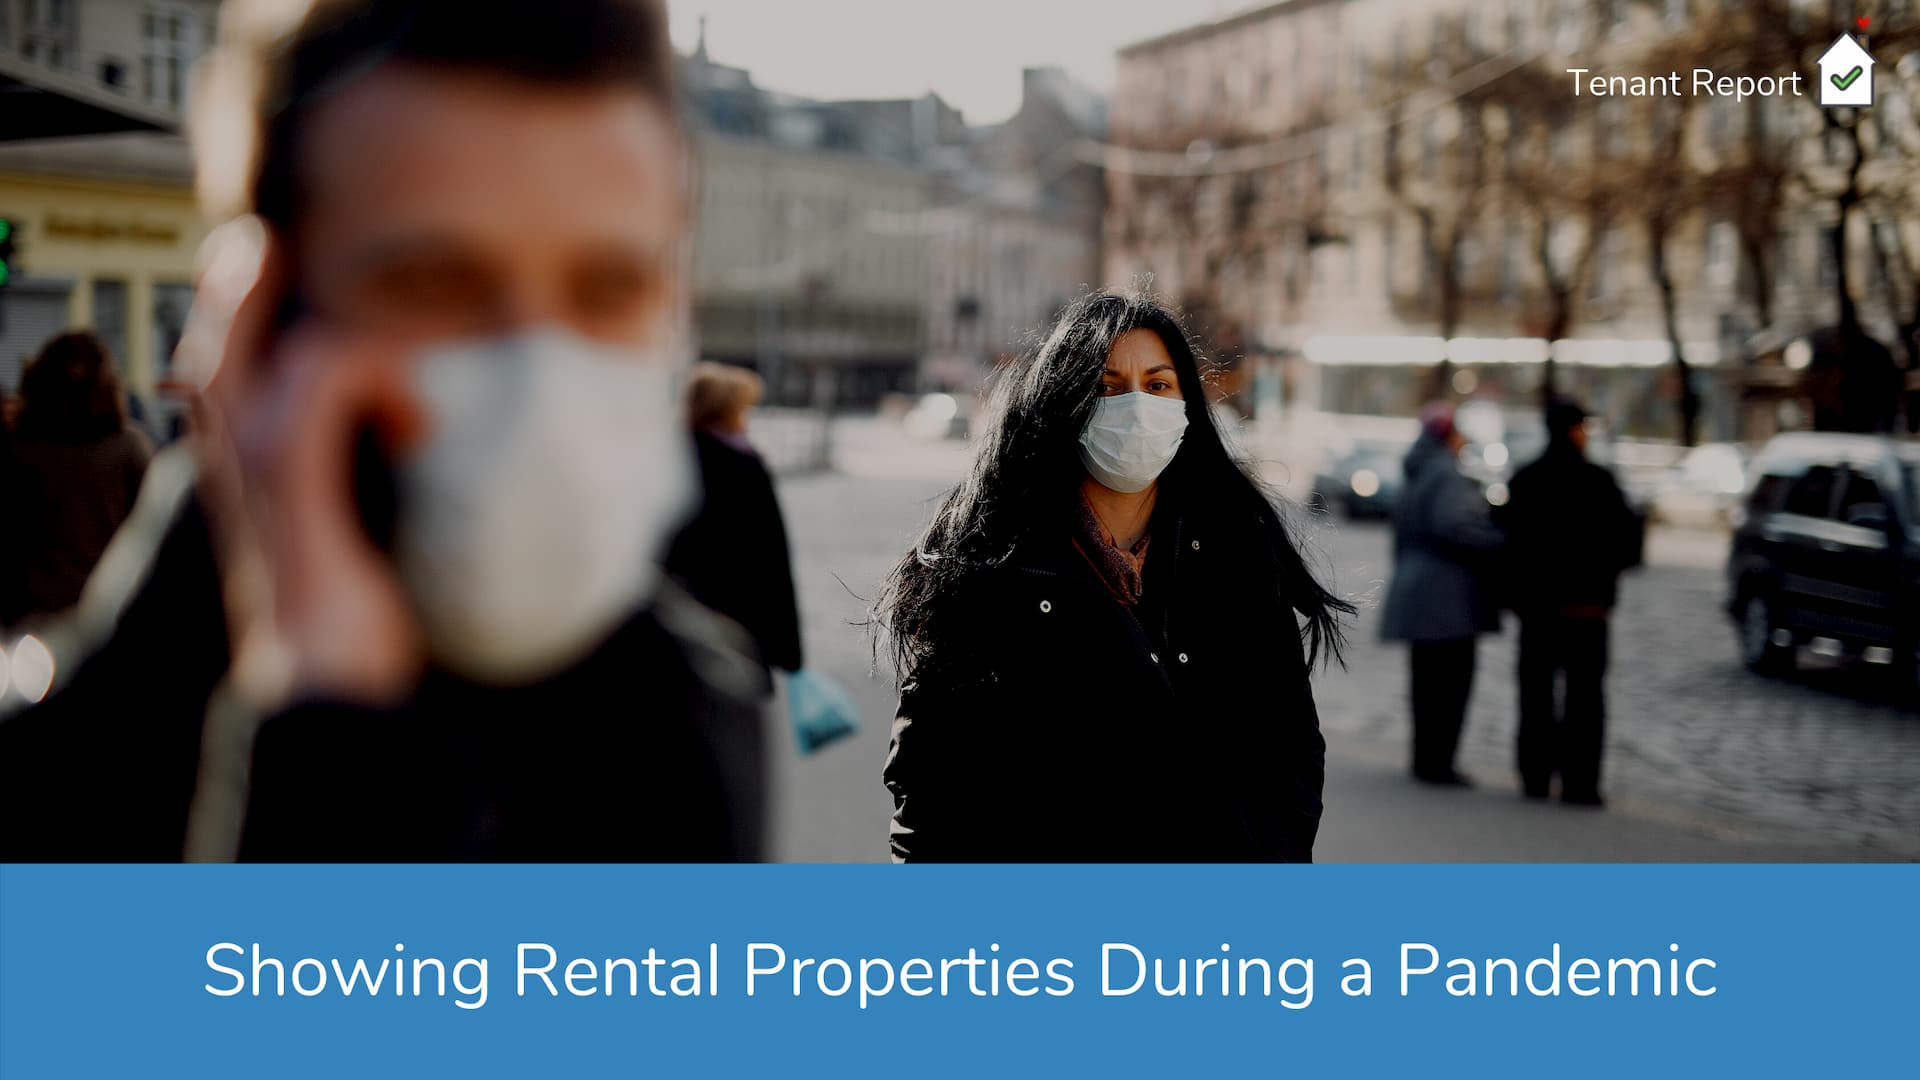 tenant-report-showing-rental-properties-during-a-pandemic